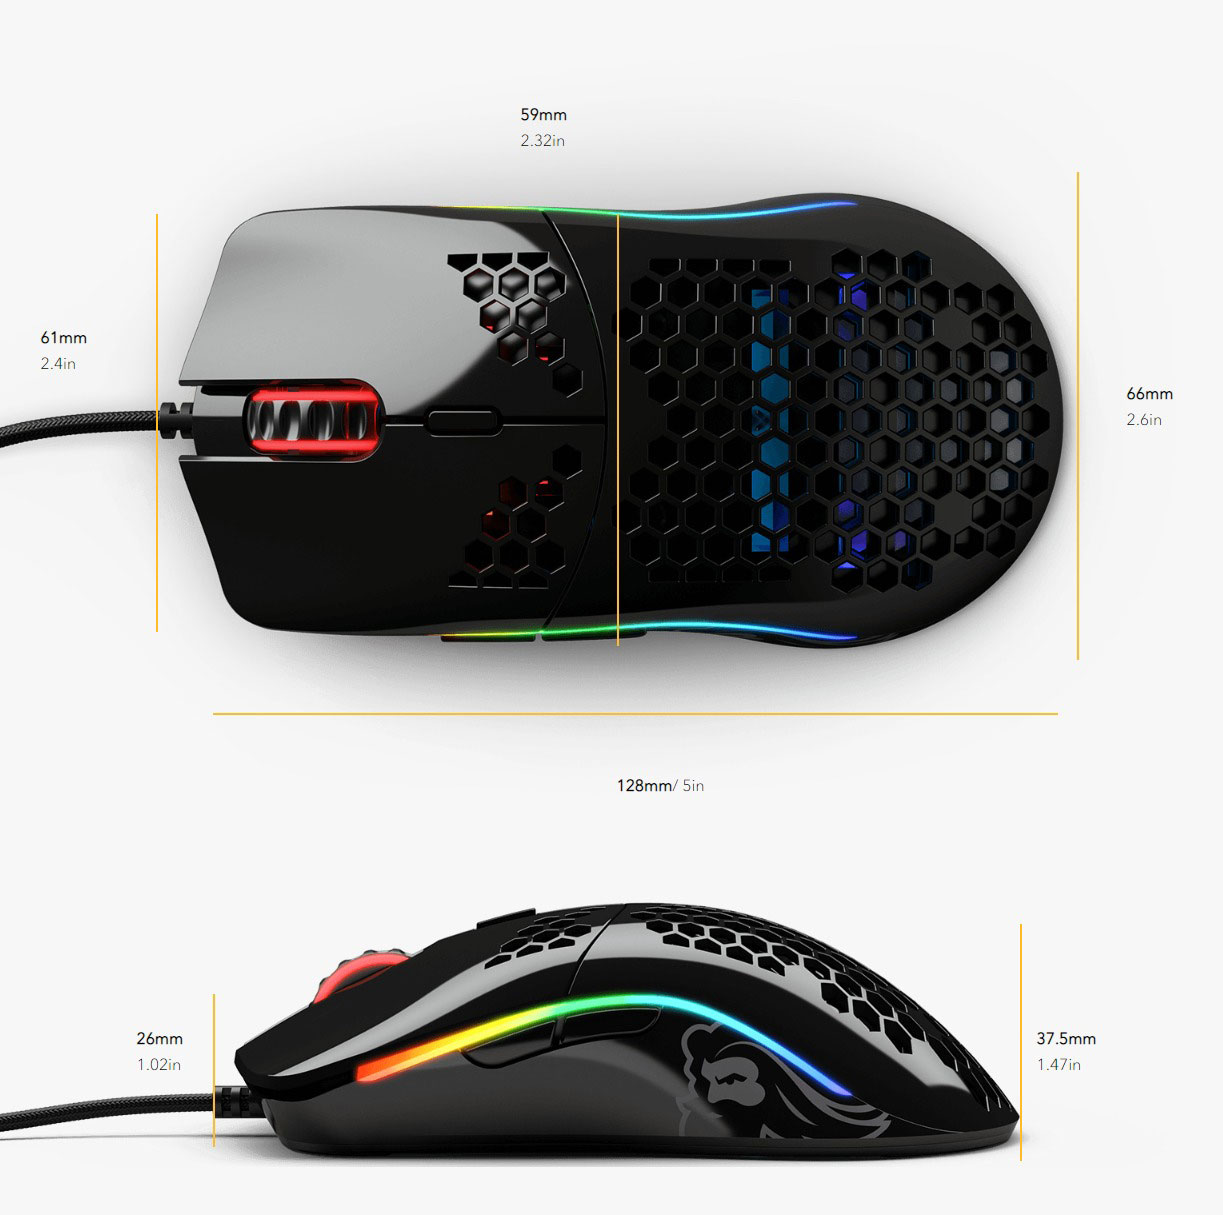 Glorious Model O Optical Gaming Mouse - Matte Black